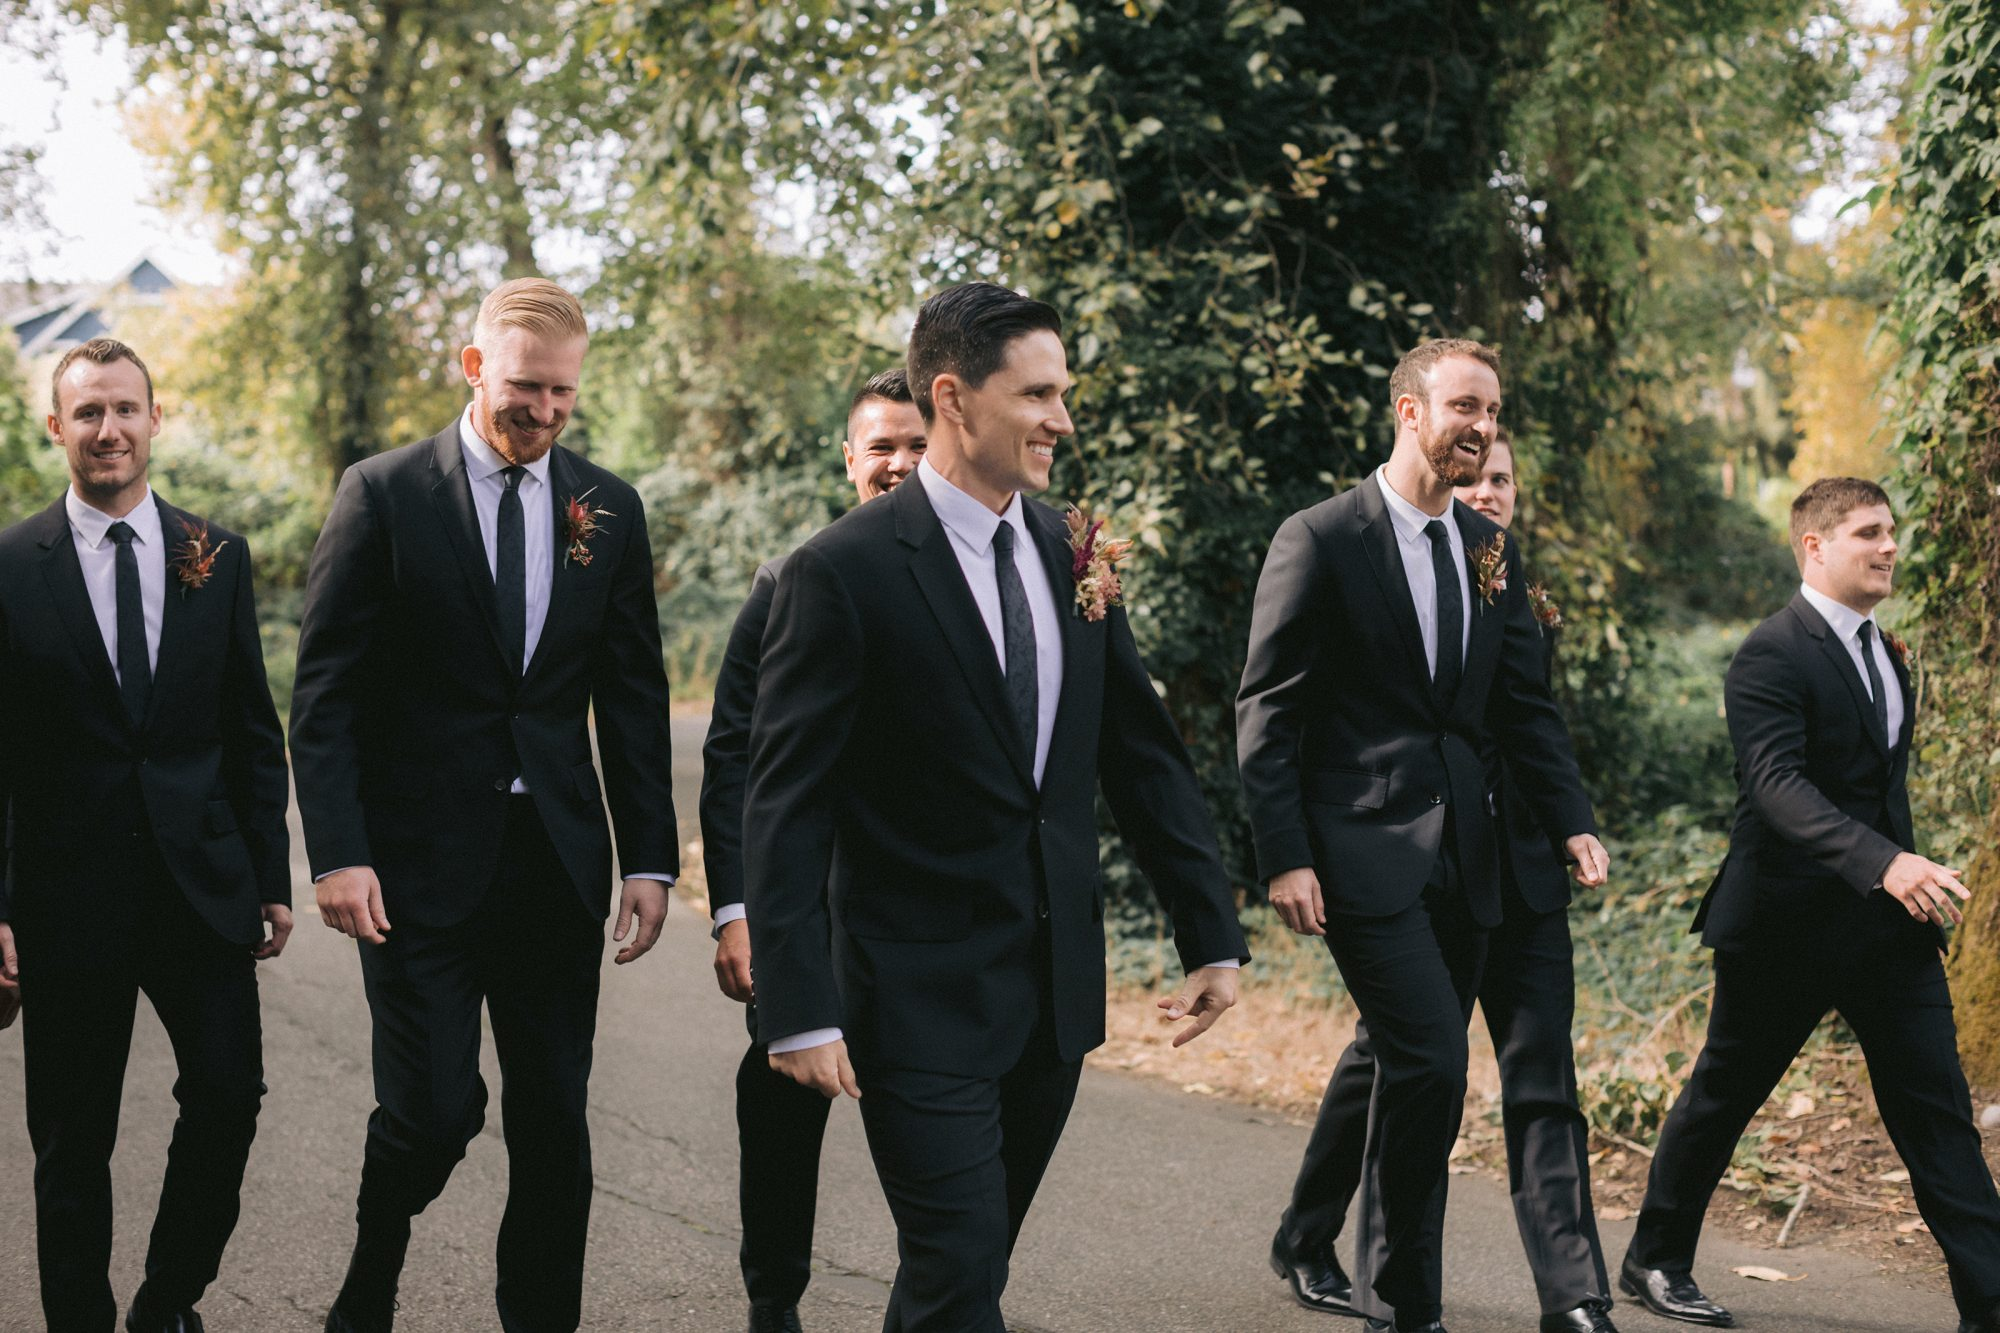 groomsmen walking together